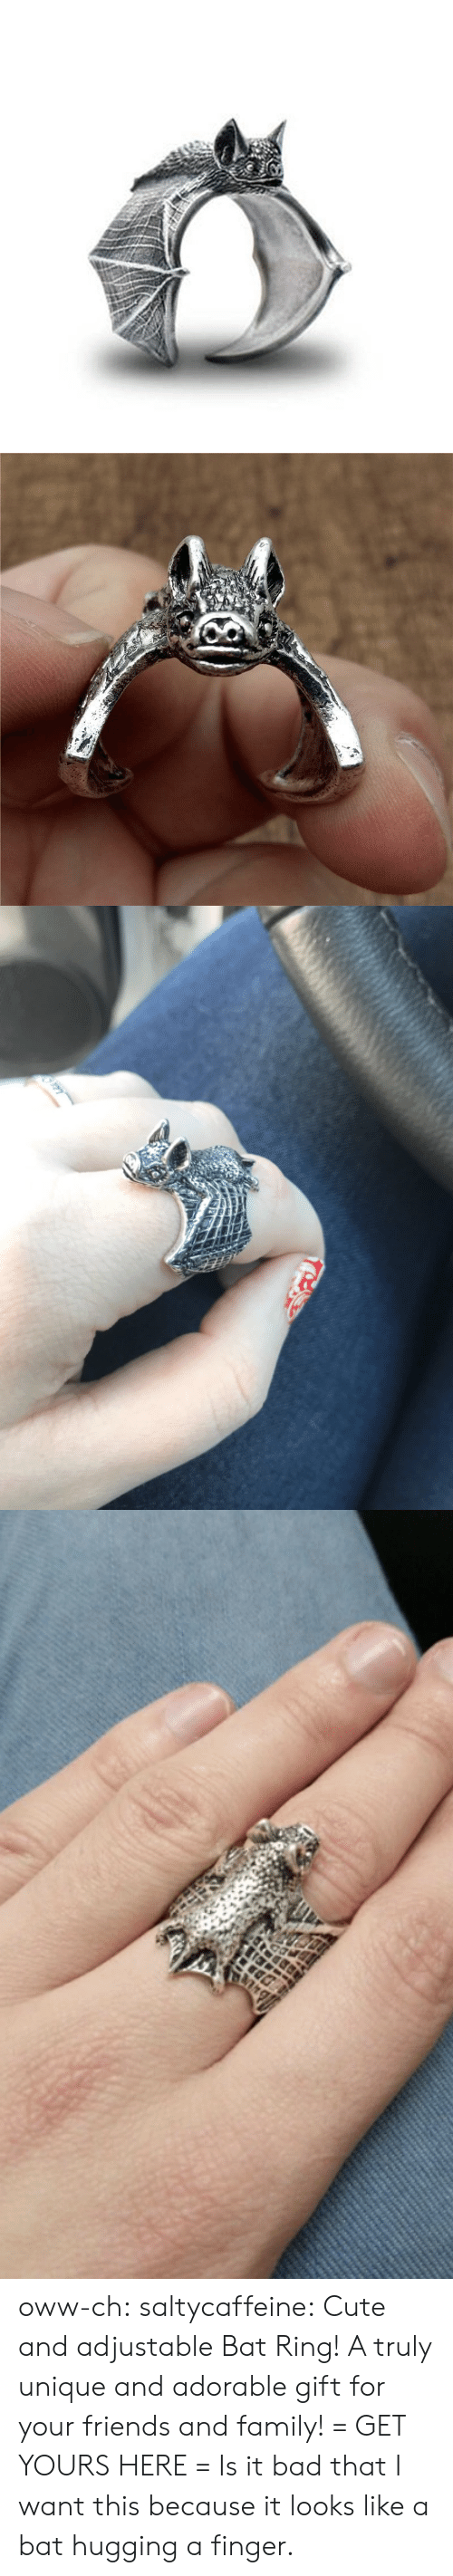 Bad, Cute, and Family: oww-ch: saltycaffeine:   Cute and adjustable Bat Ring! A truly unique and adorable gift for your friends and family! = GET YOURS HERE =   Is it bad that I want this because it looks like a bat hugging a finger.